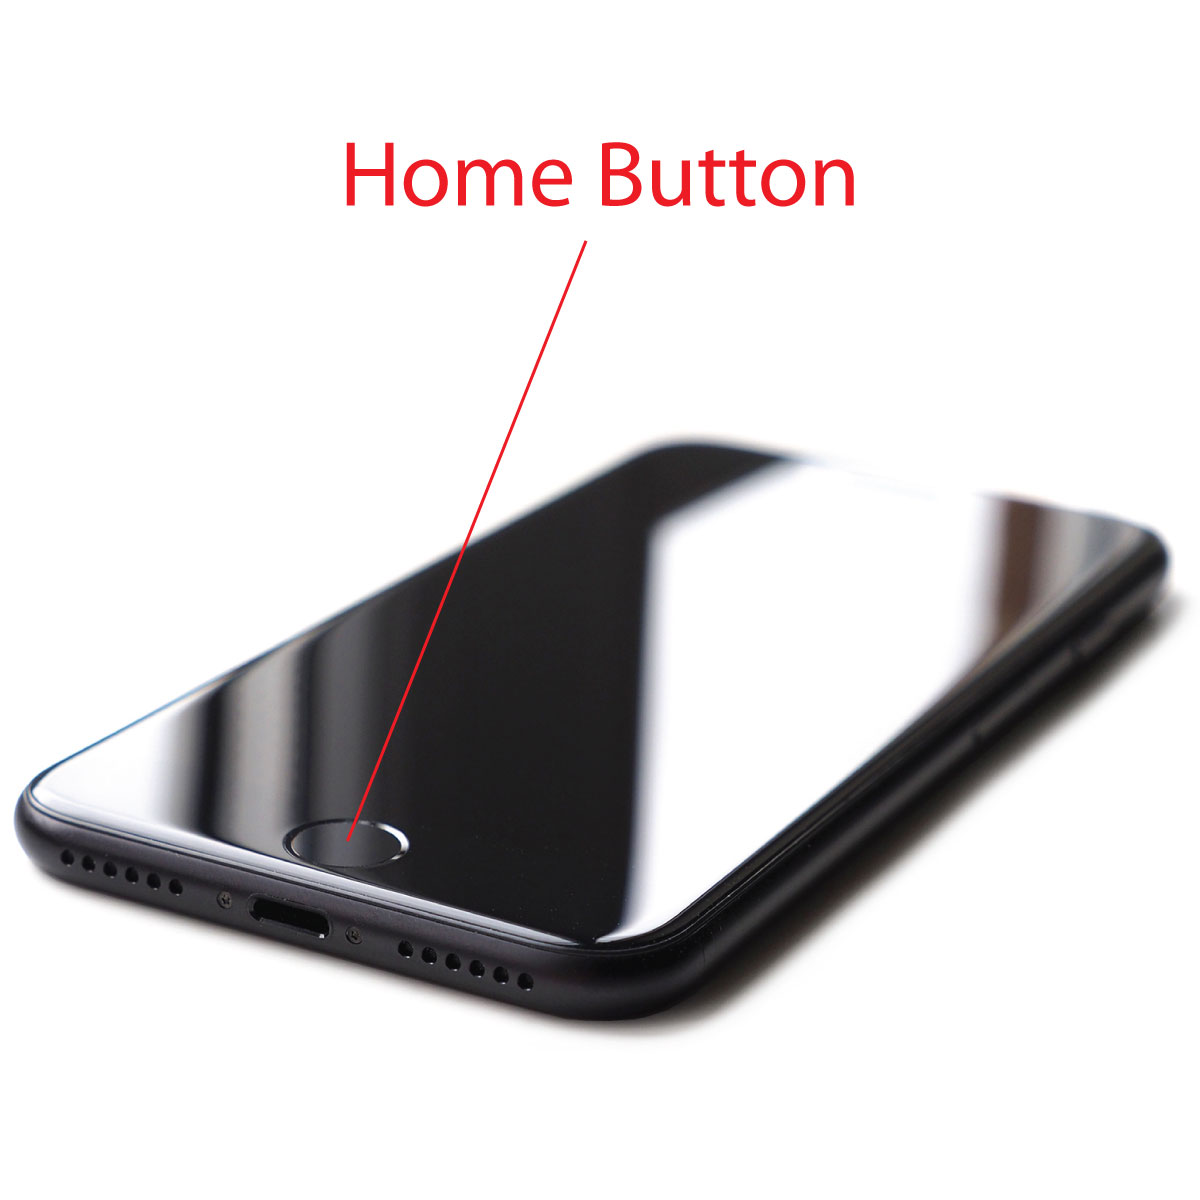 Apple iPhone 7 / 7 Plus Home Button Repair Service